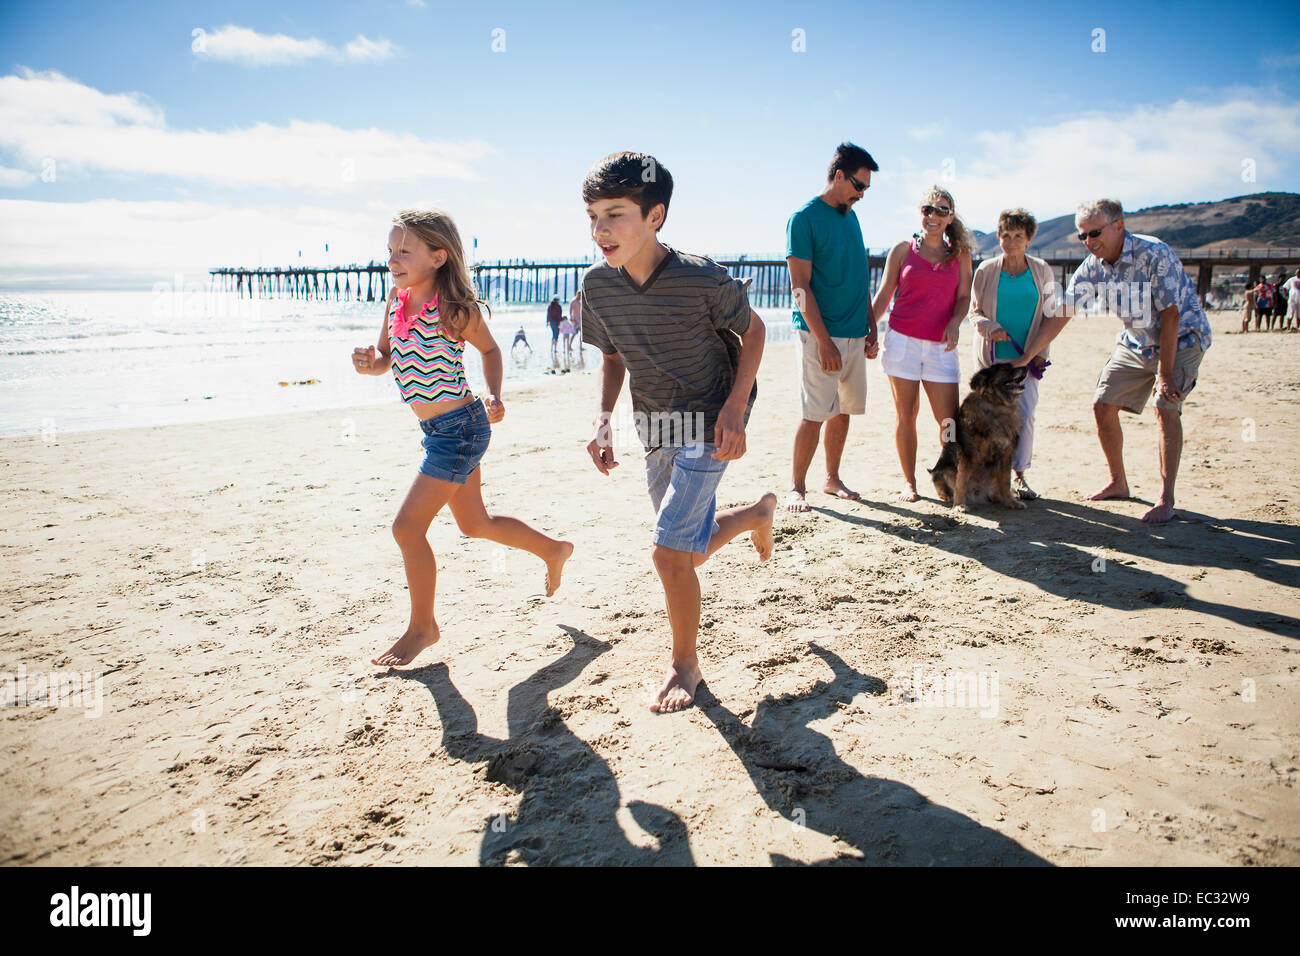 Family takes a stroll, Pismo Beach, Central Coast, California, United States of America - Stock Image